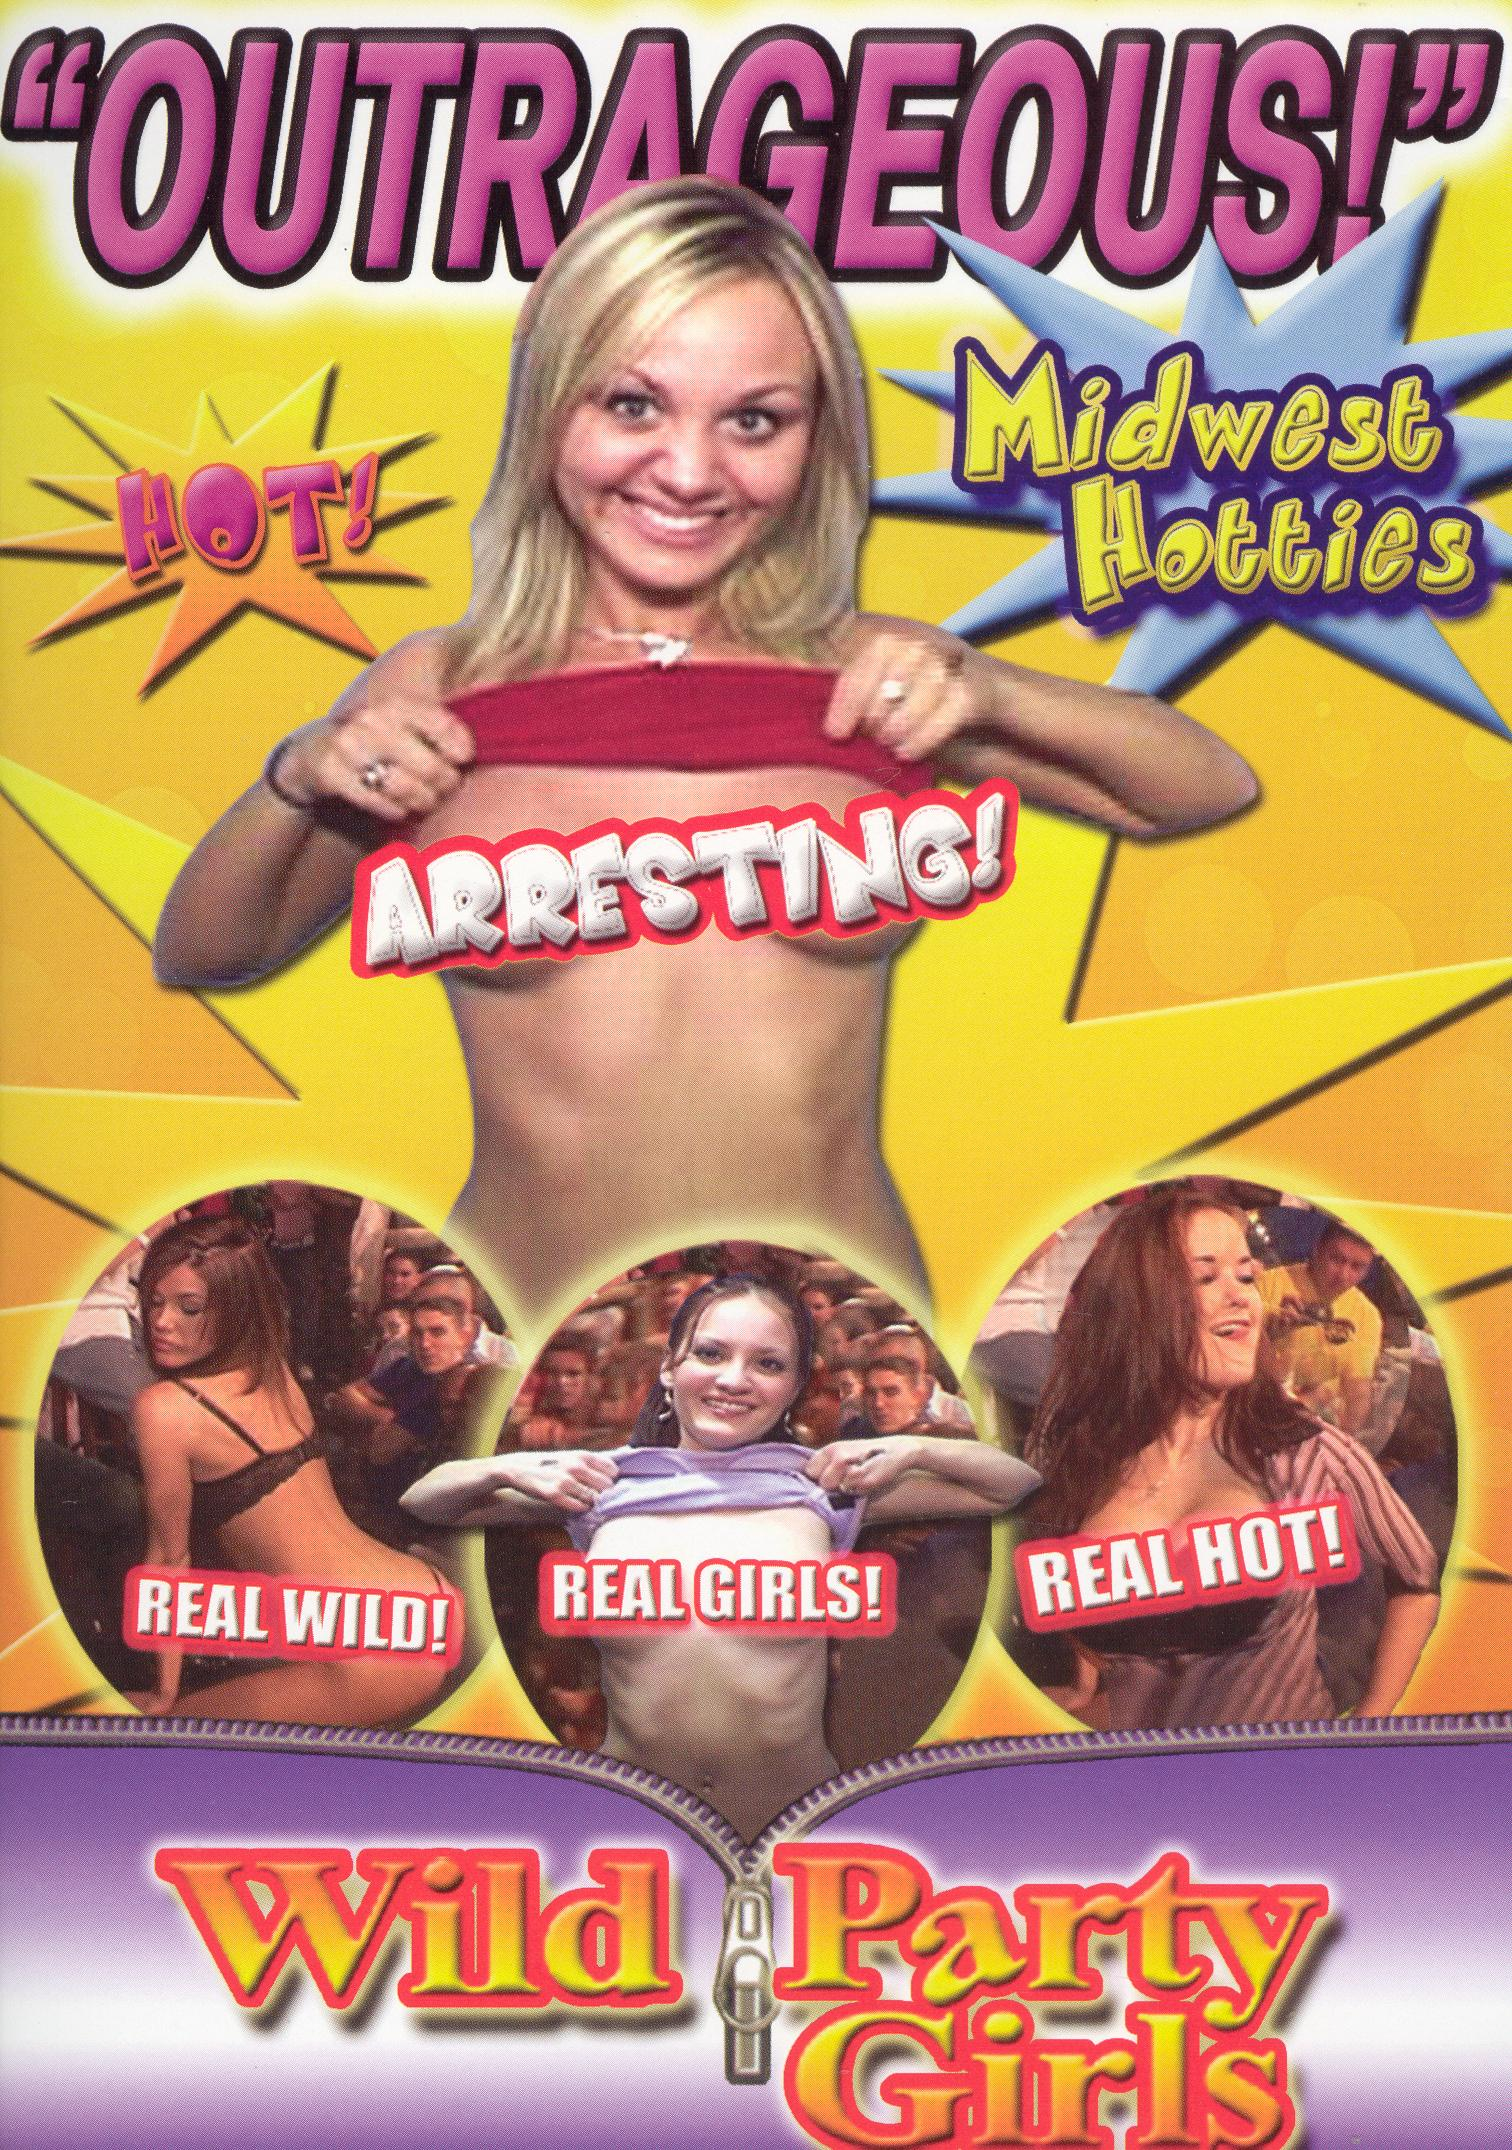 Wild Party Girls: Midwest Hotties